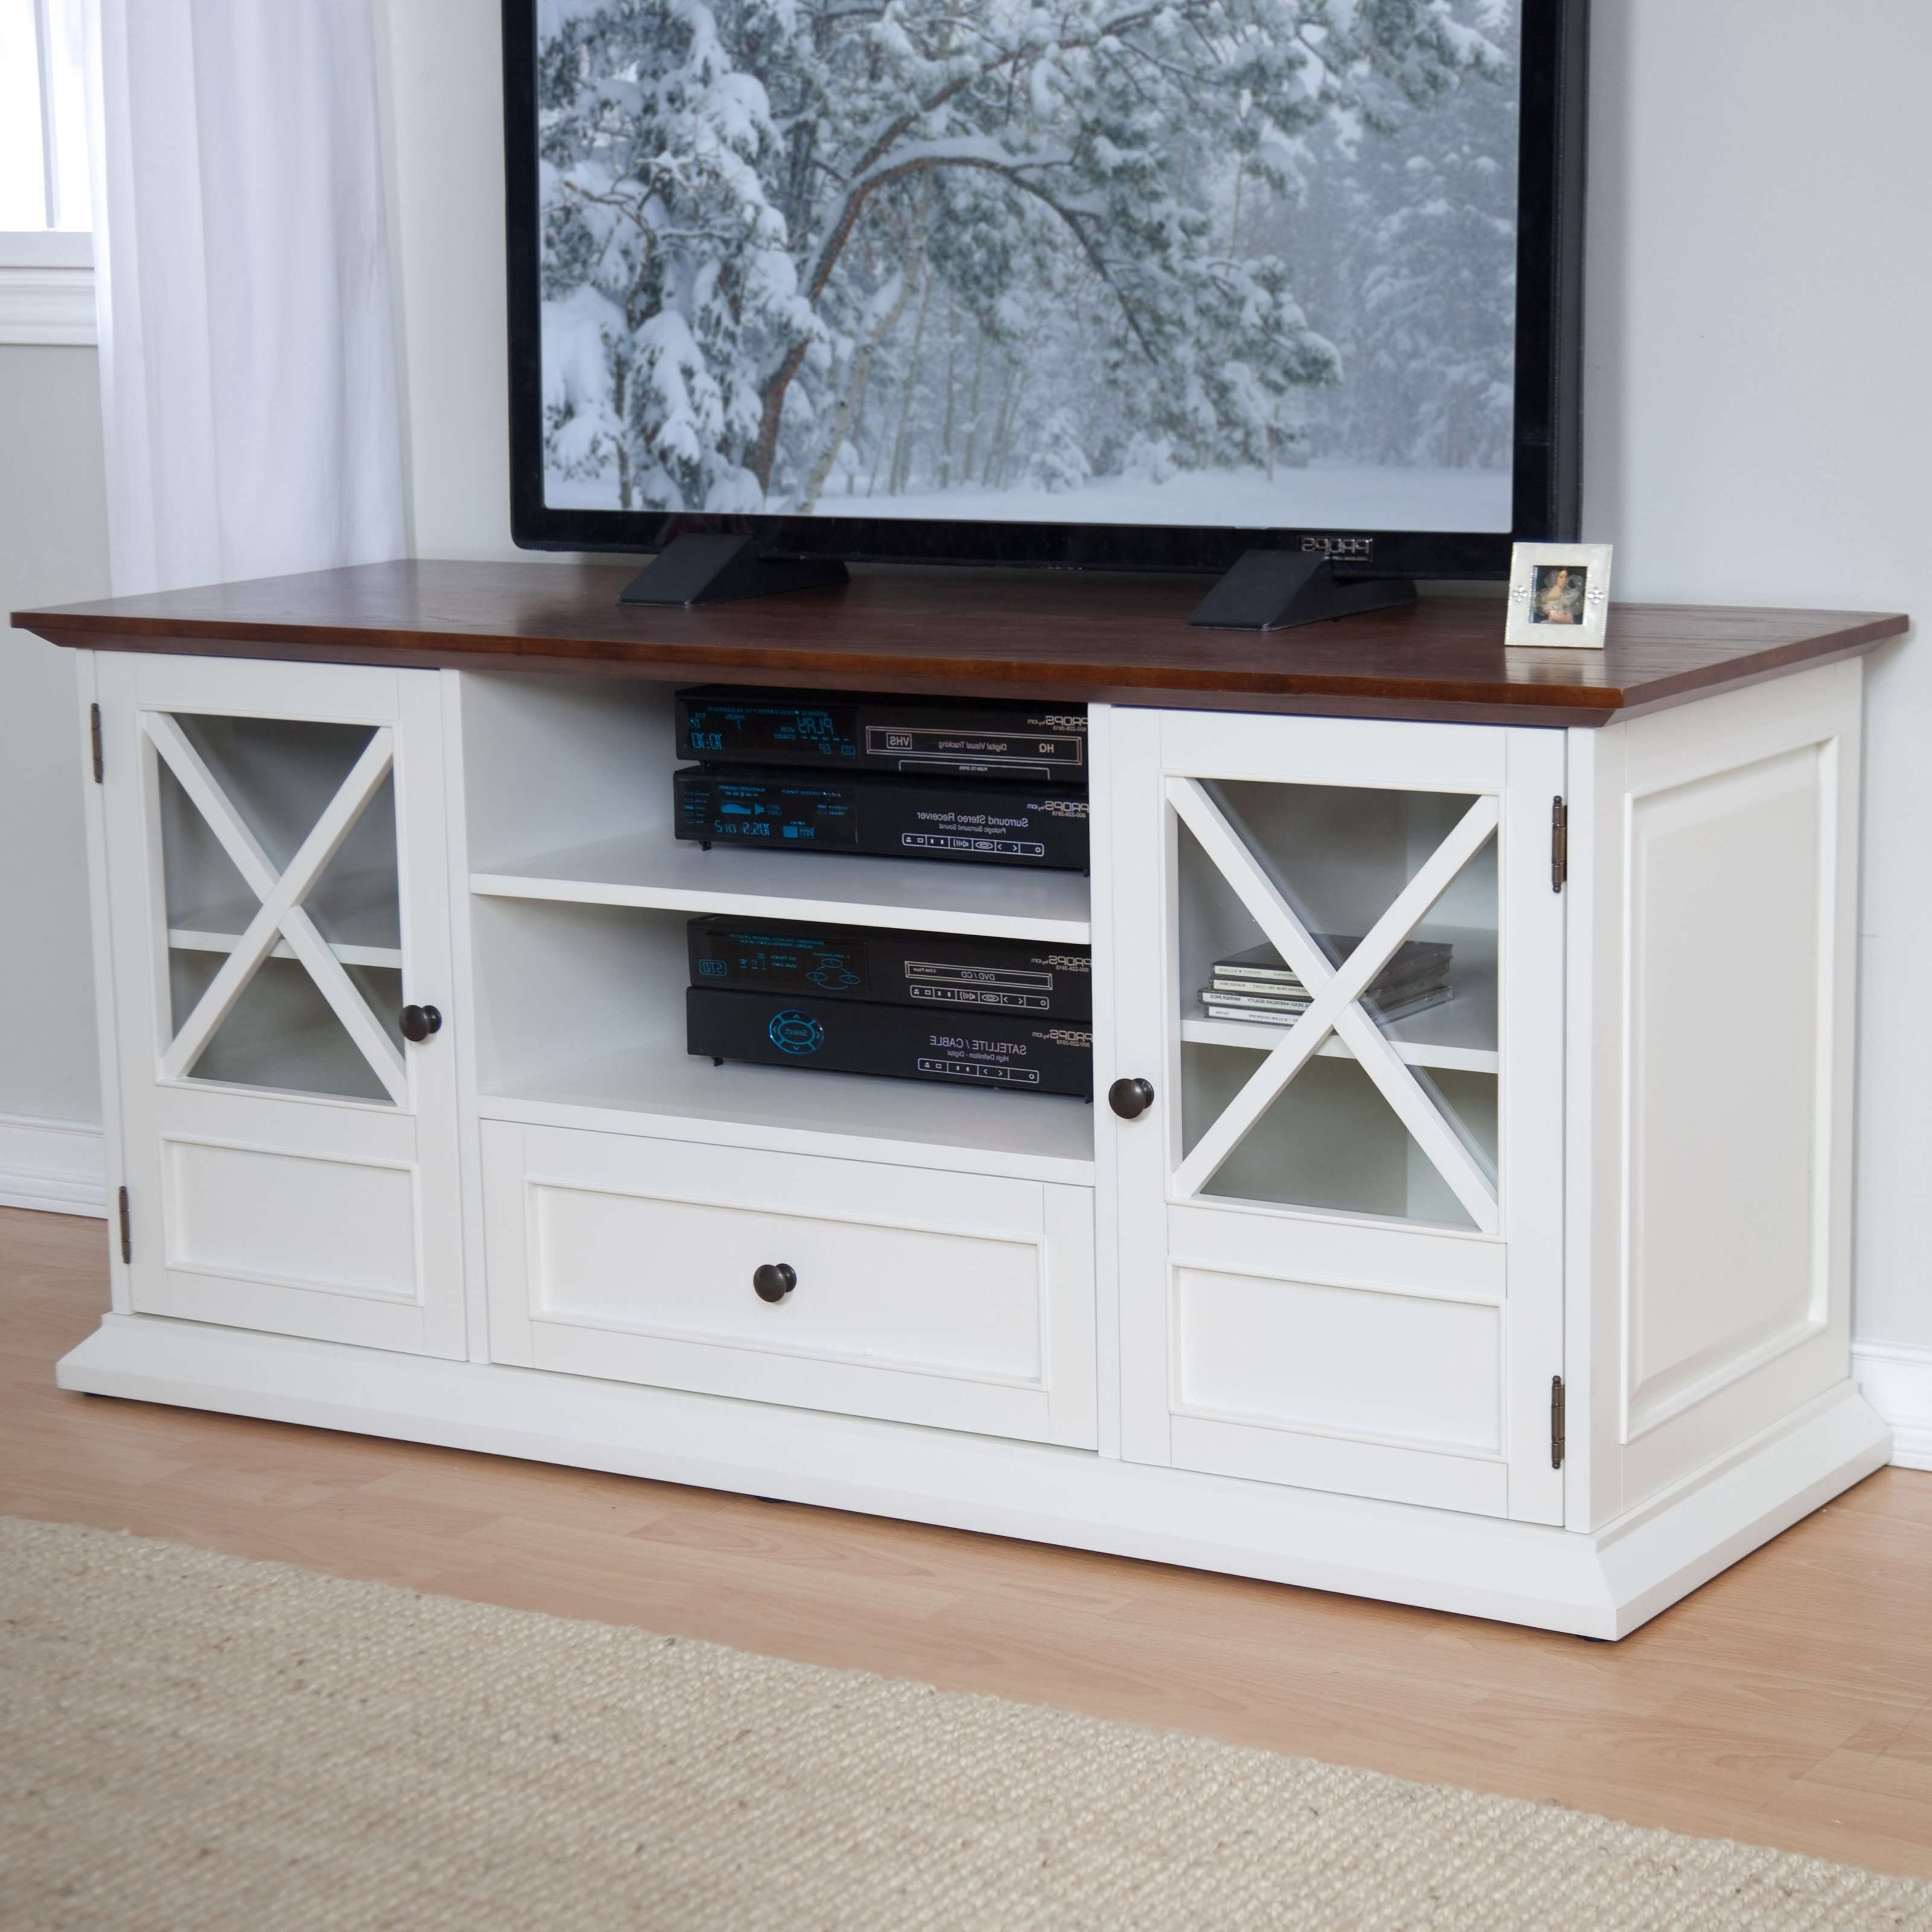 Perfect Antique White Tv Stand 74 With Additional Home Designing Throughout Antique Style Tv Stands (View 11 of 15)